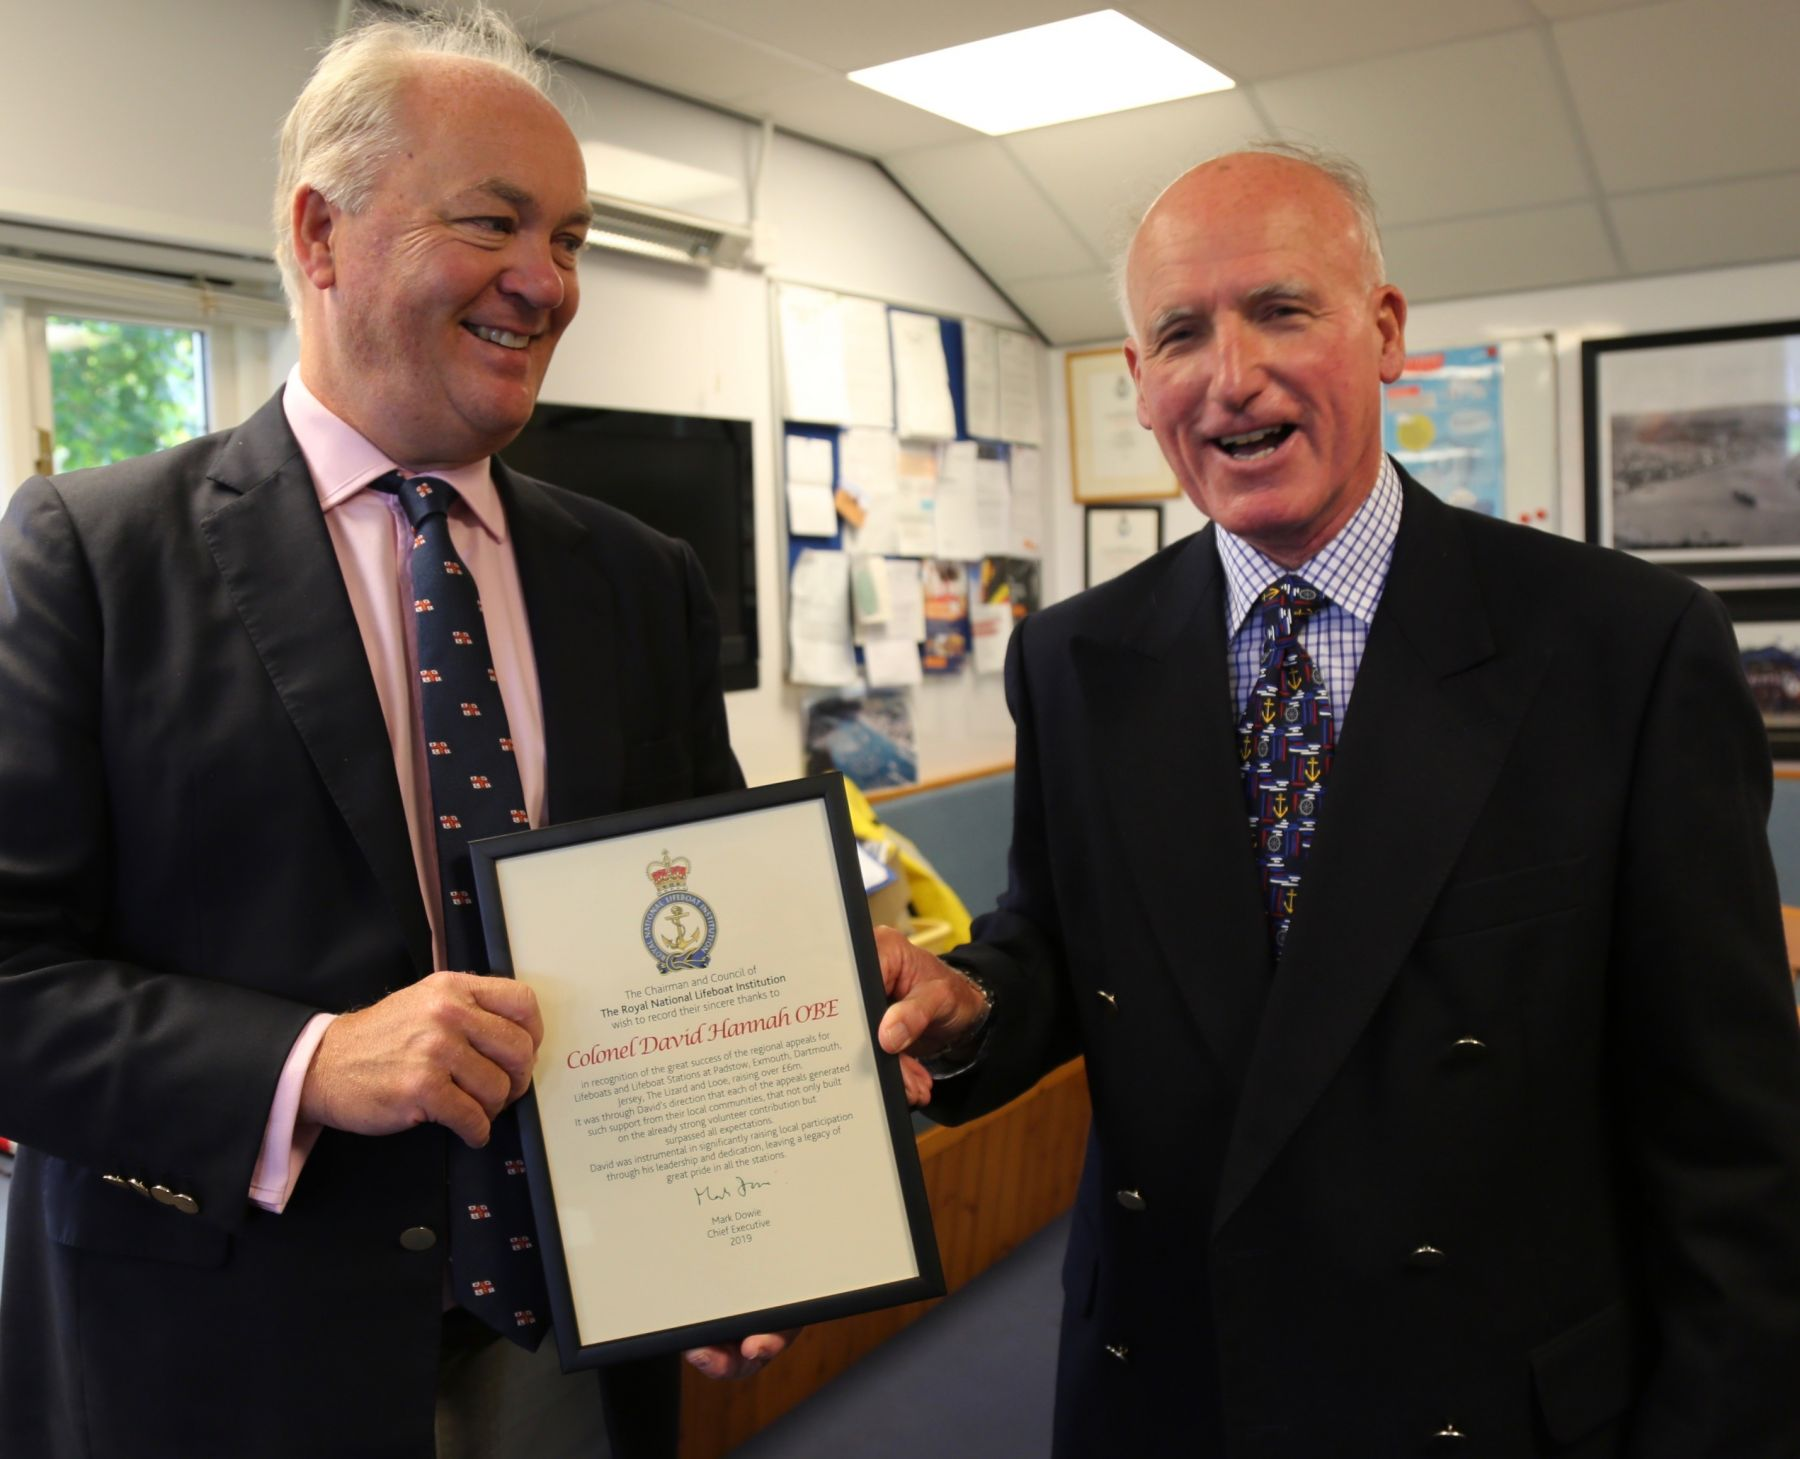 David Hannah being presented with his certificate by Mark Dowie RNLI CEO (Lt)